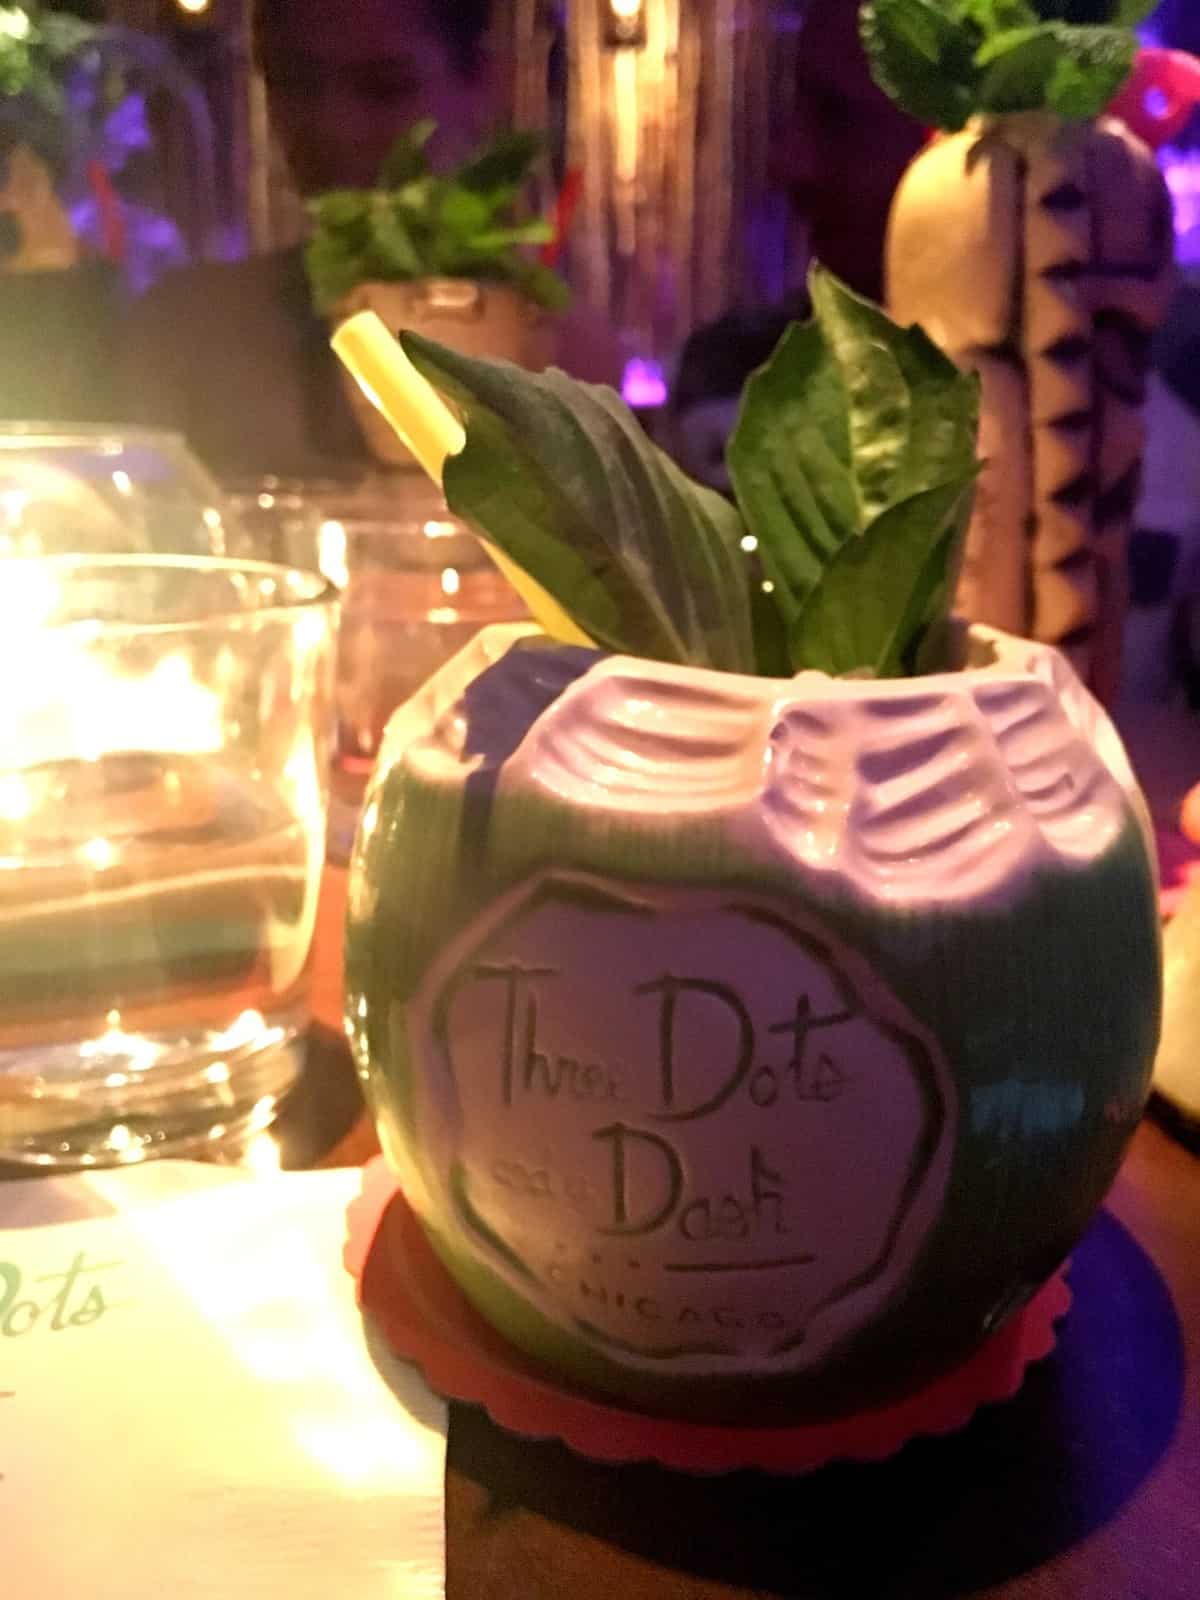 Tropical drinks from The Dote and Dash bar in Chicago